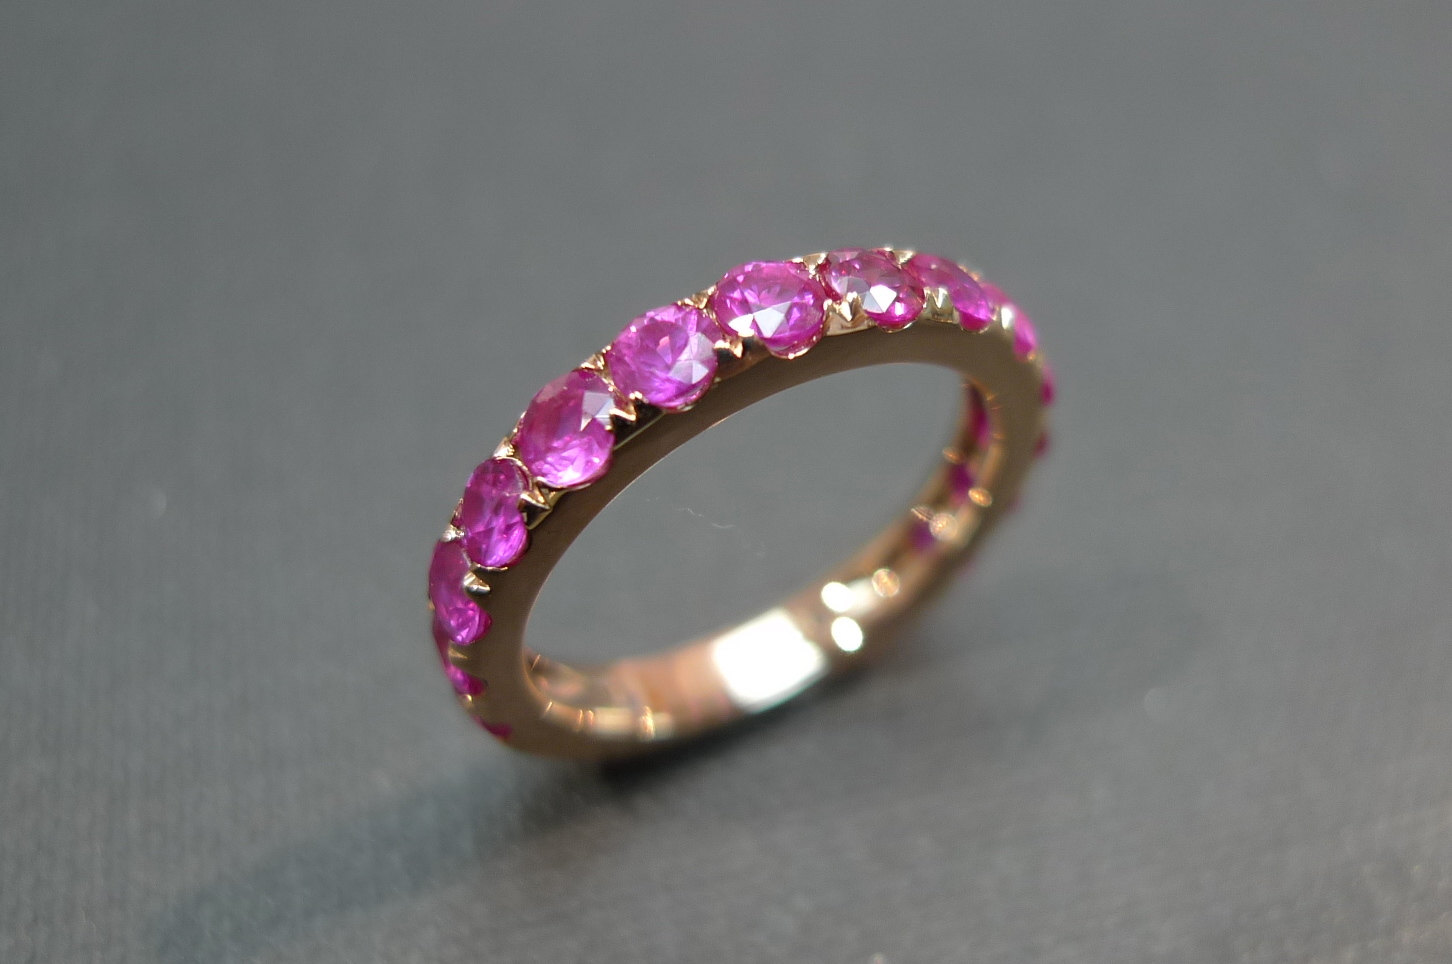 pink sapphire wedding band ring in 18k rose gold pink diamond wedding band Pink Sapphire Wedding Band Ring in 18K Rose Gold